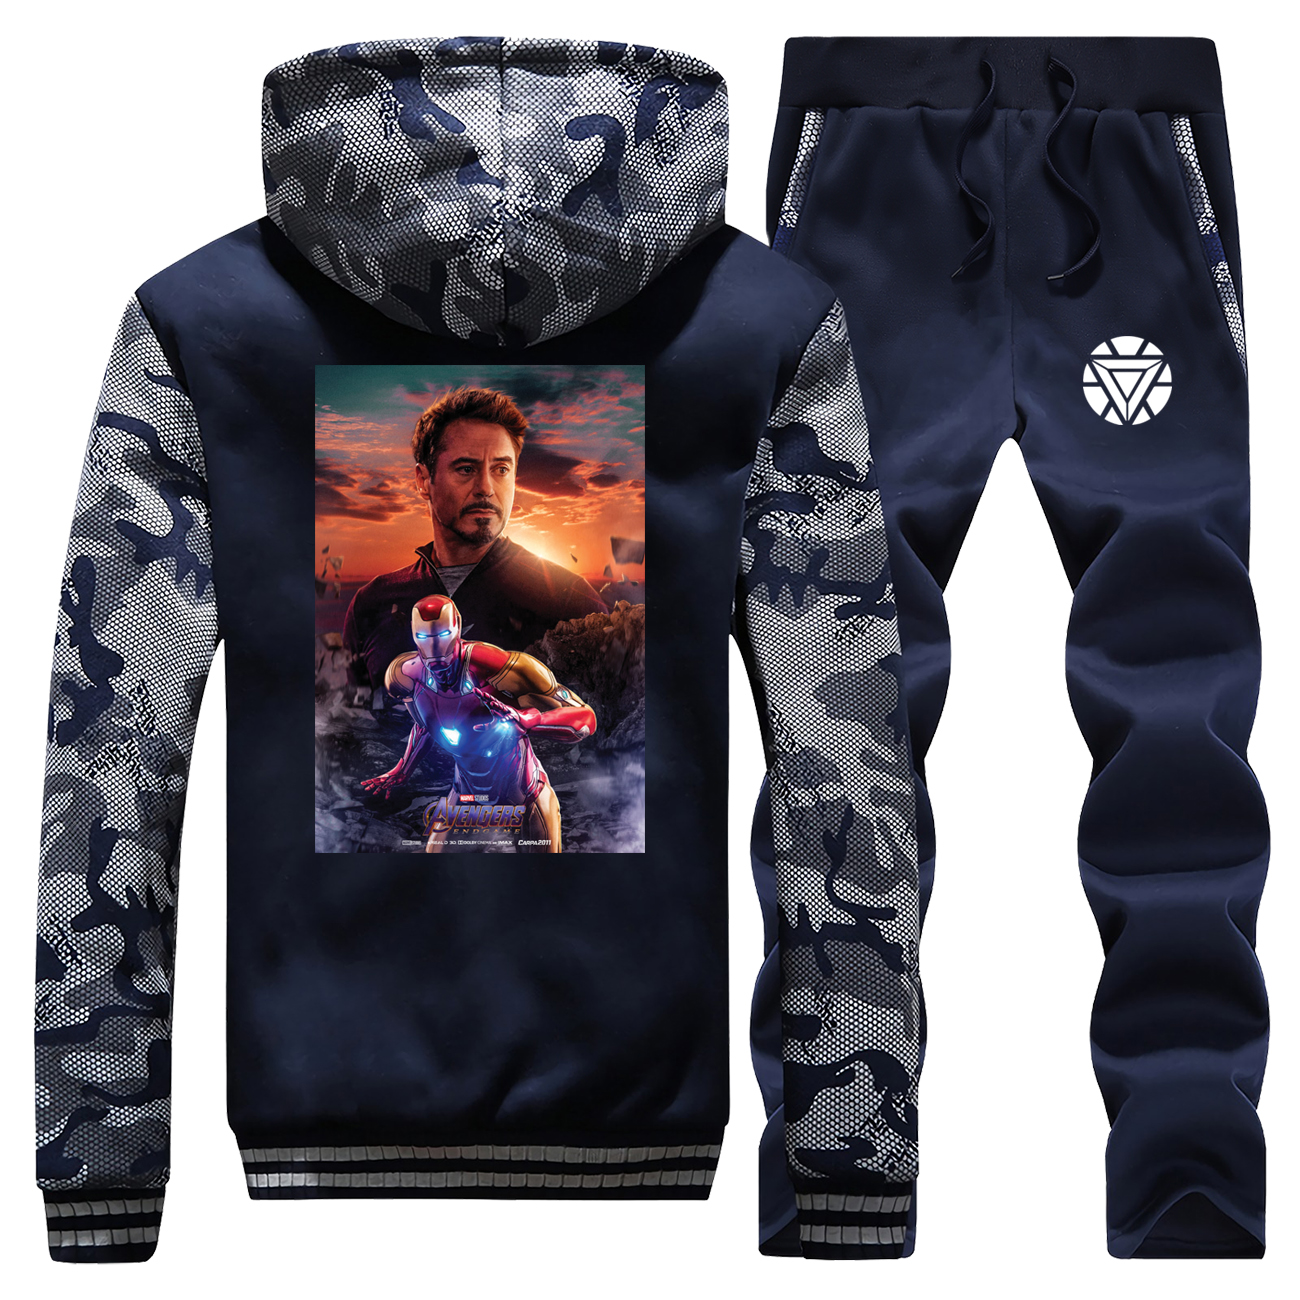 2019 Winter Hot Sale Hoody Sportswear Avengers Endgame Iron Man Cool Tony Stark Men Camouflage Coat THick Suit+2 Piece Set Pants